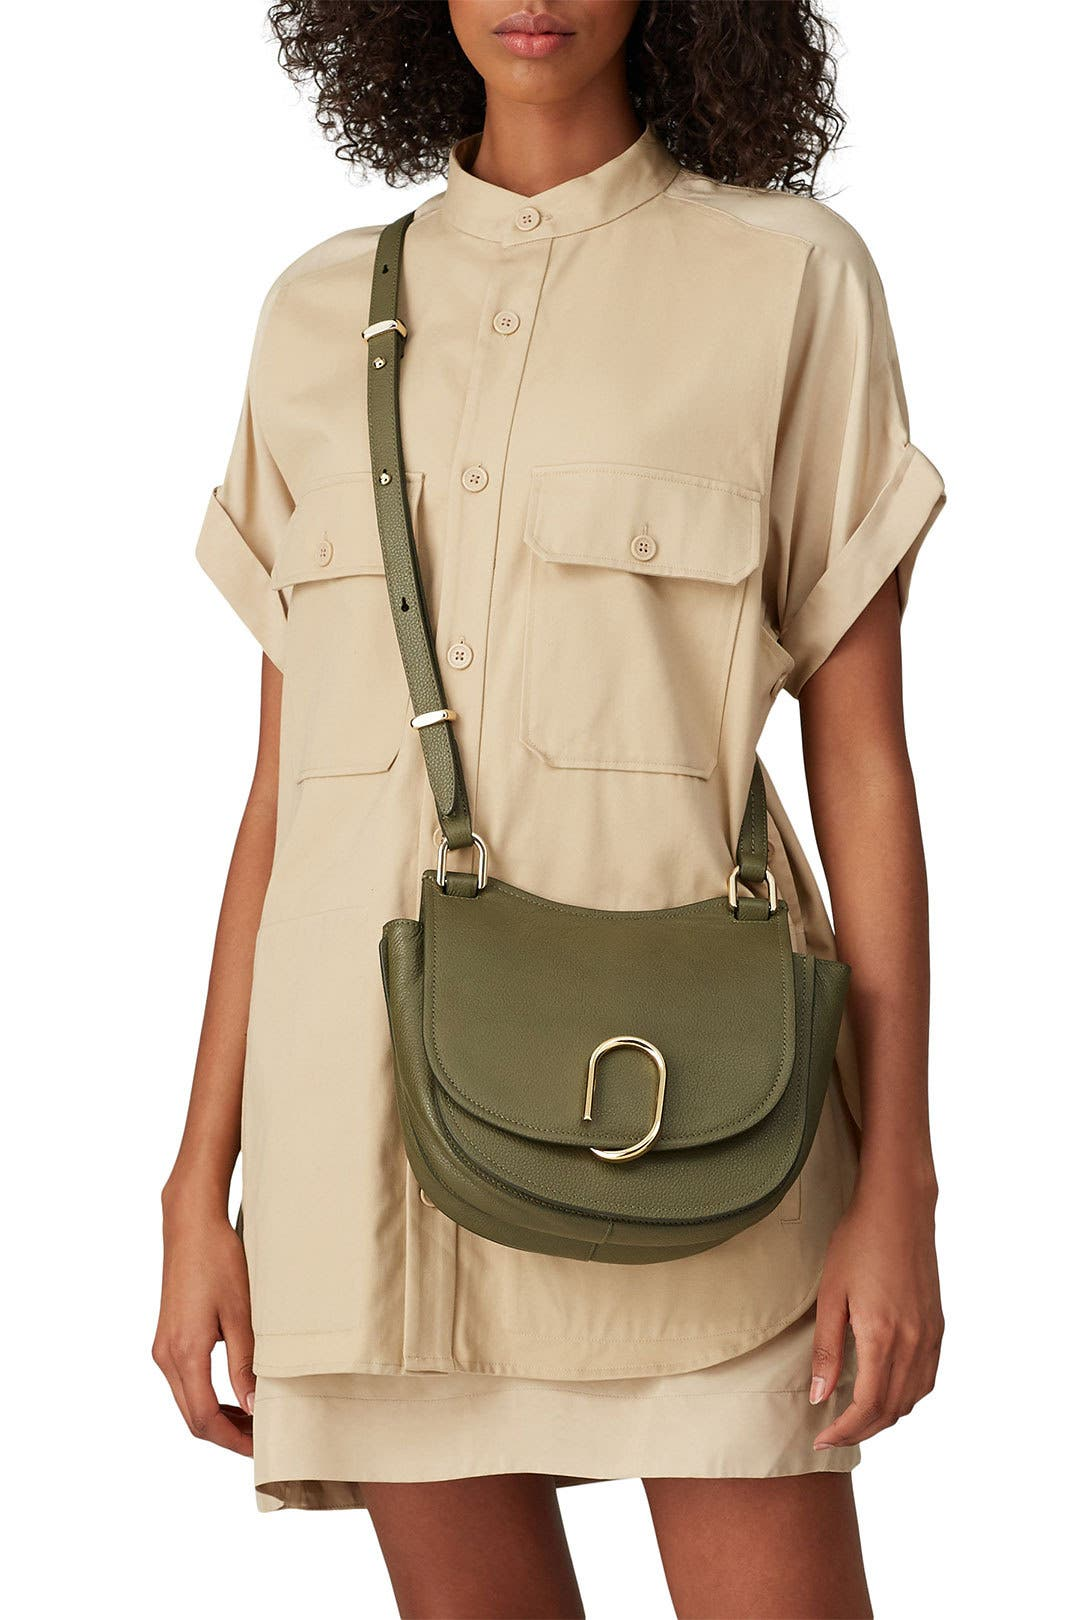 Military Green Alix Hunter Bag by 3.1 Phillip Lim Accessories for $135 | Rent the Runway